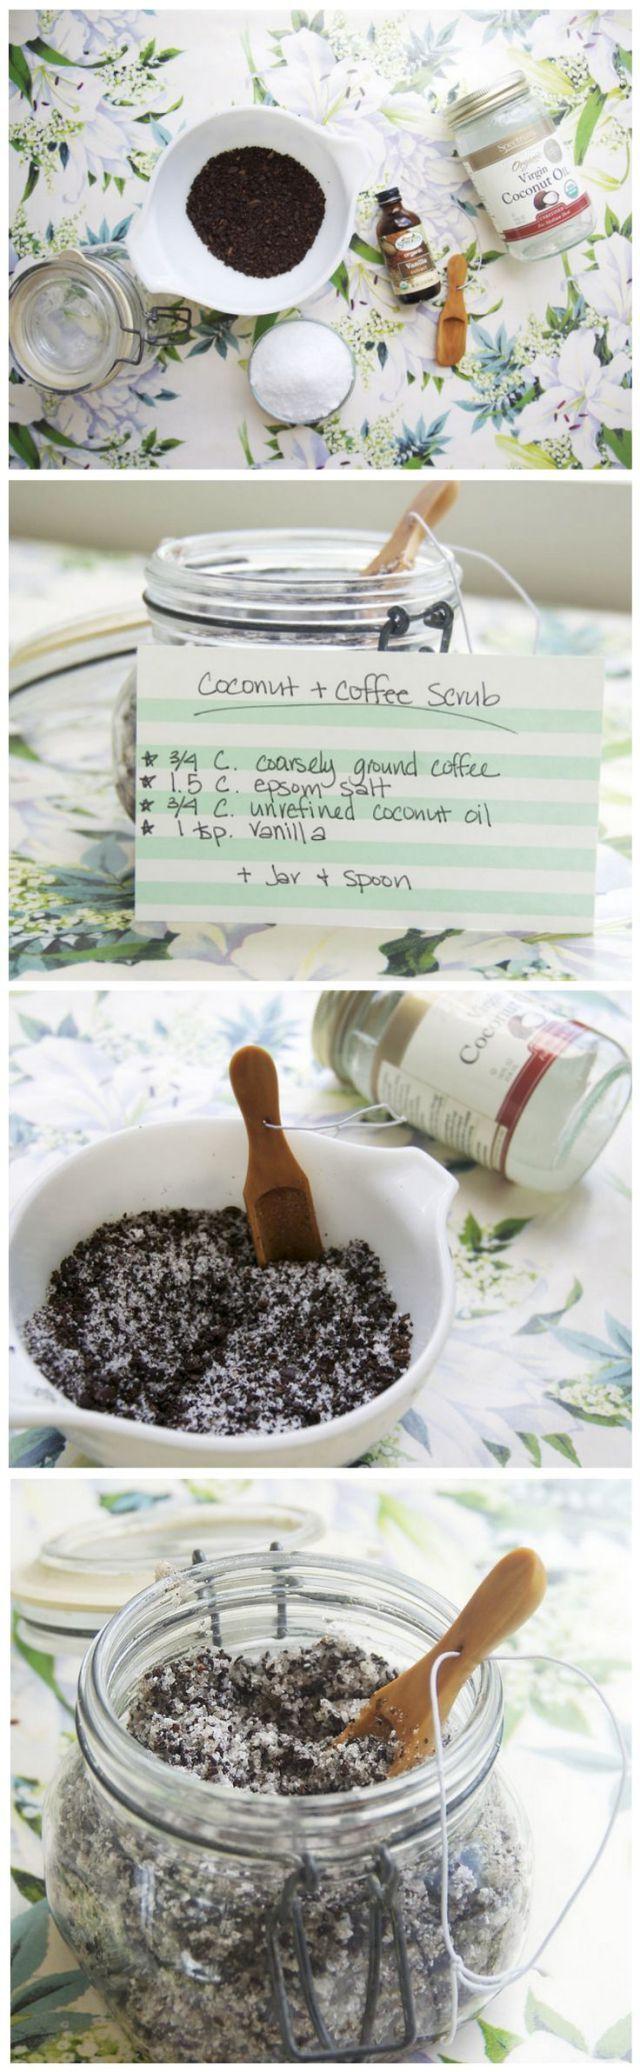 best diy crafts images on pinterest body scrubs homemade and